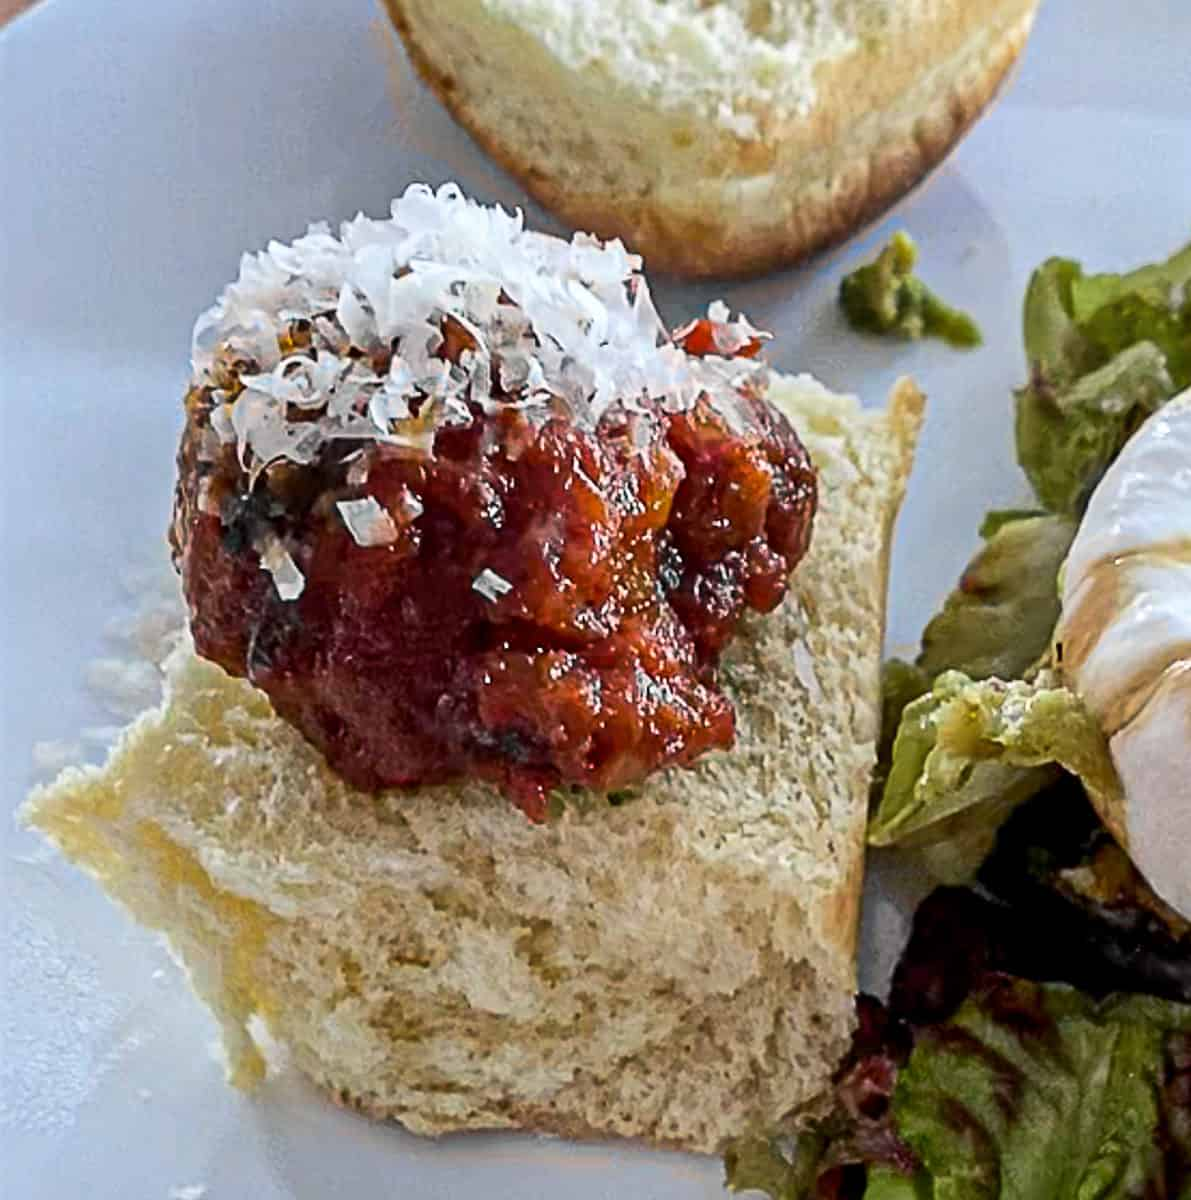 Hawaiian Roll Meatball Sliders Dinner Slow Cooked or Baked